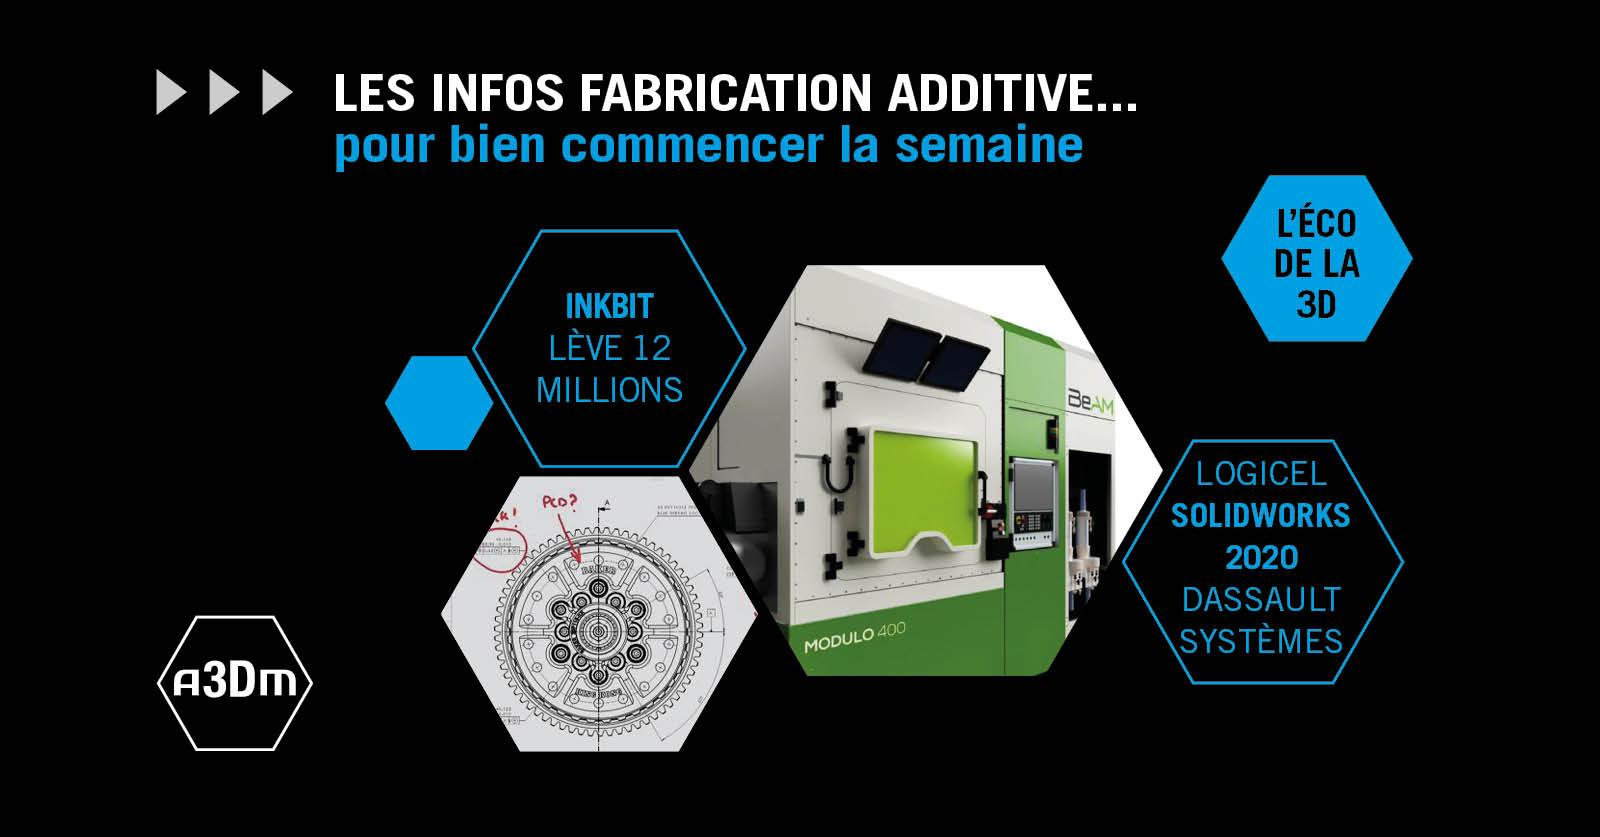 infos_fabrication_additive_semaine_25